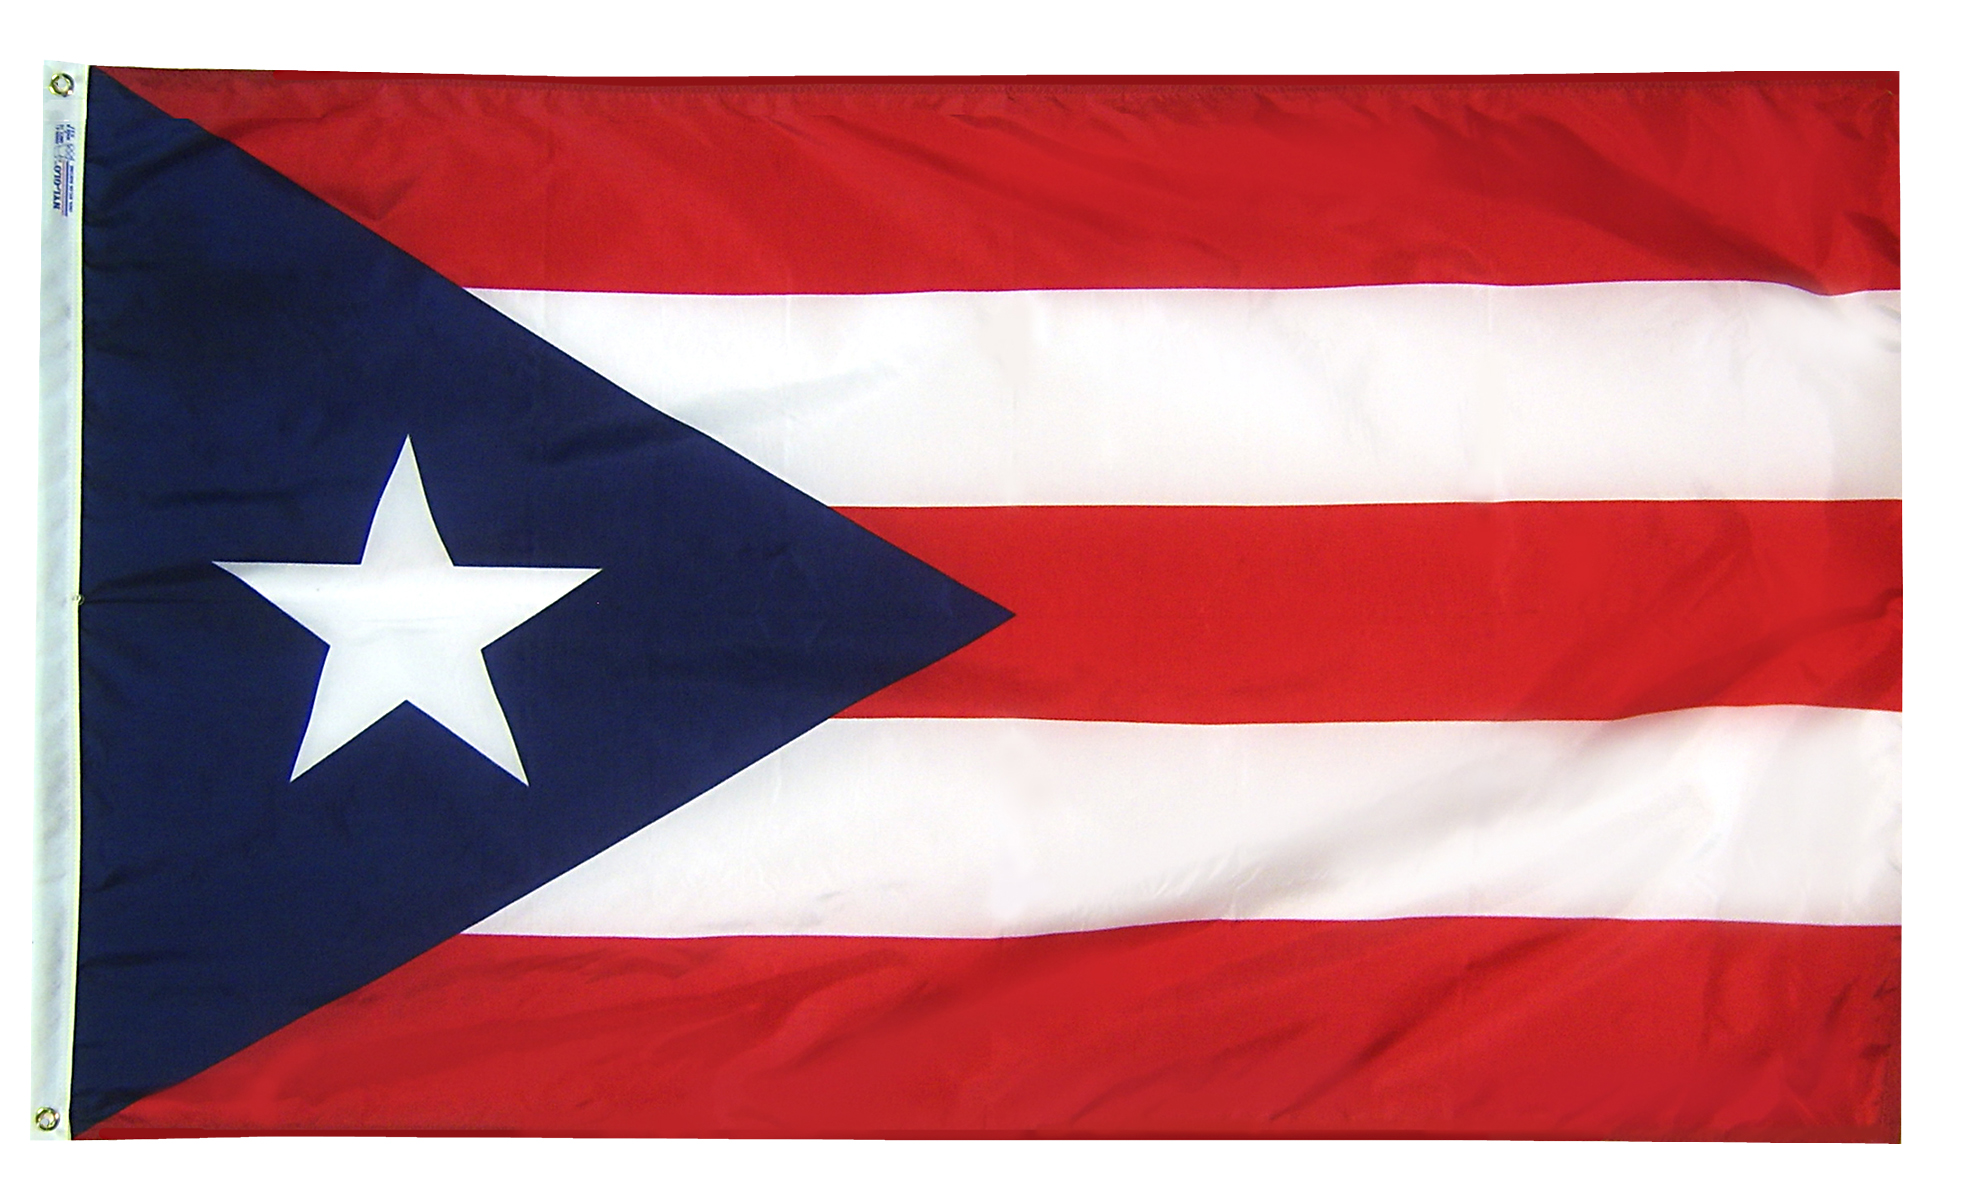 Puerto rican flag images galleries for Puerto rican